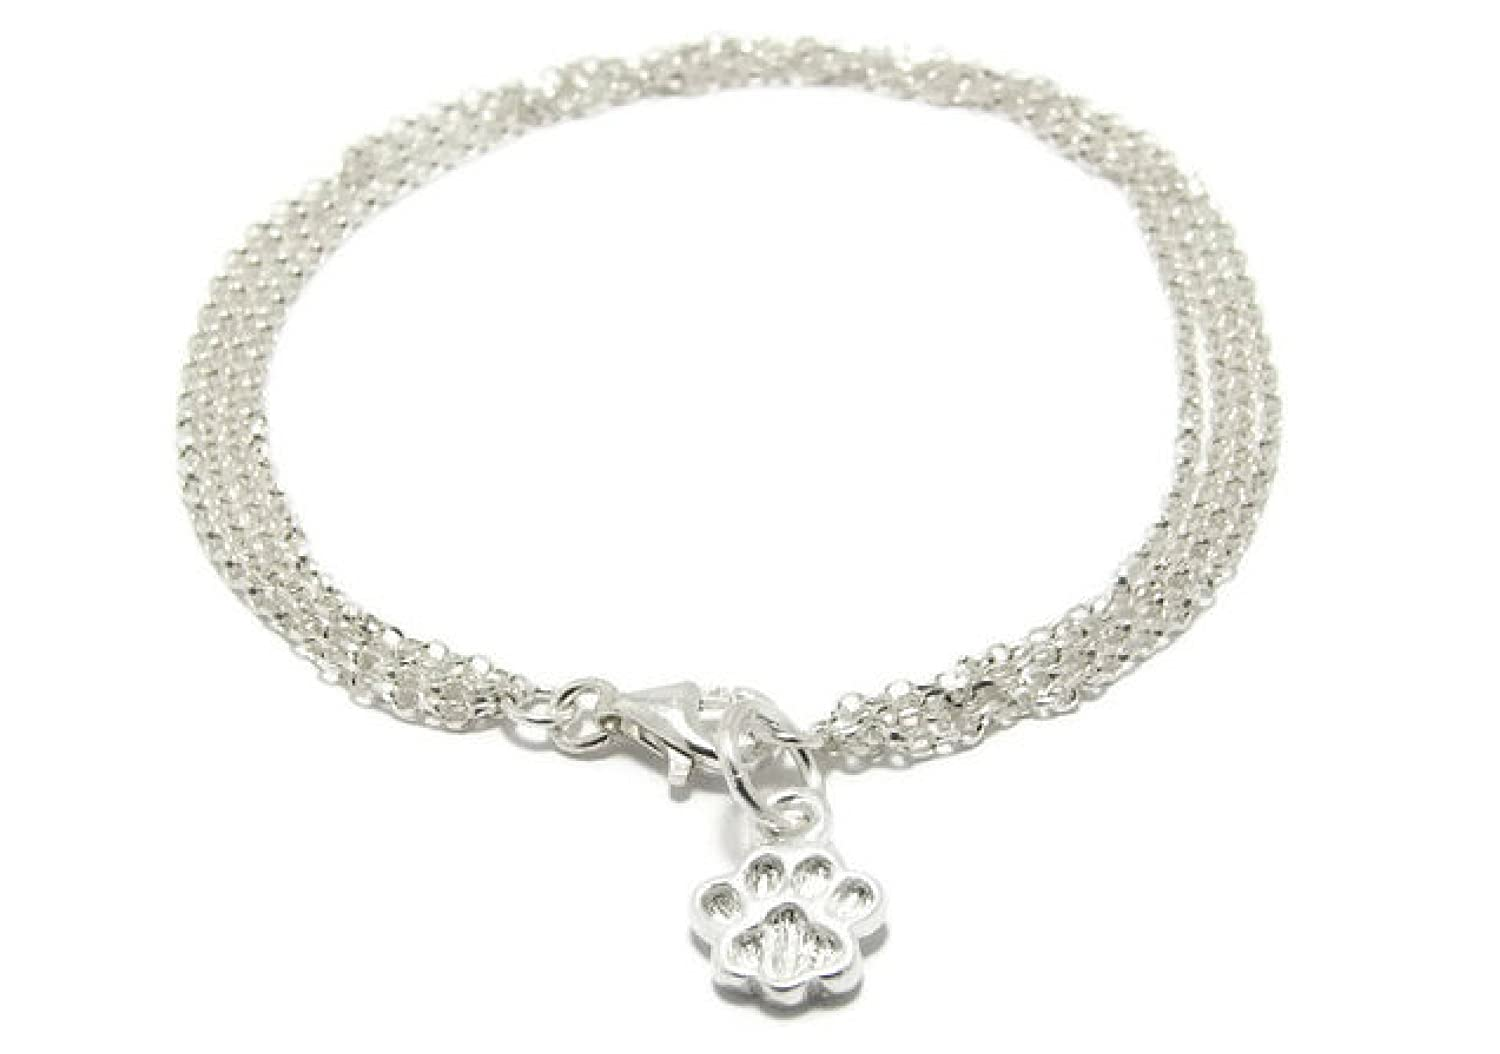 Kyperco 4 Layered Fine Sterling Silver Chain Links With Customized Animal Paw Charm Handmade Bracelet For Women